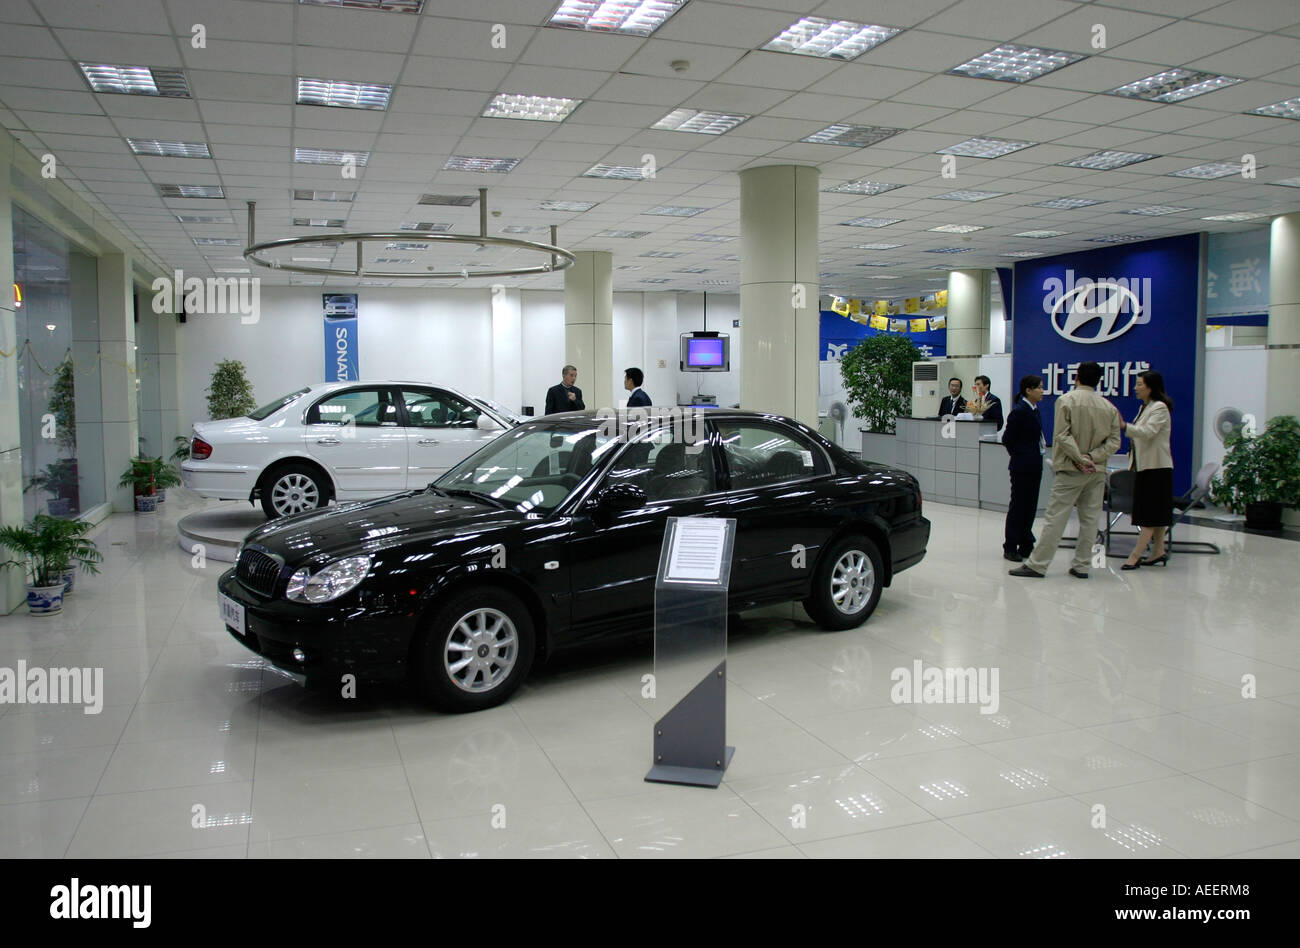 Hyundai Car Stock Photos Hyundai Car Stock Images Alamy - Hyundai car show